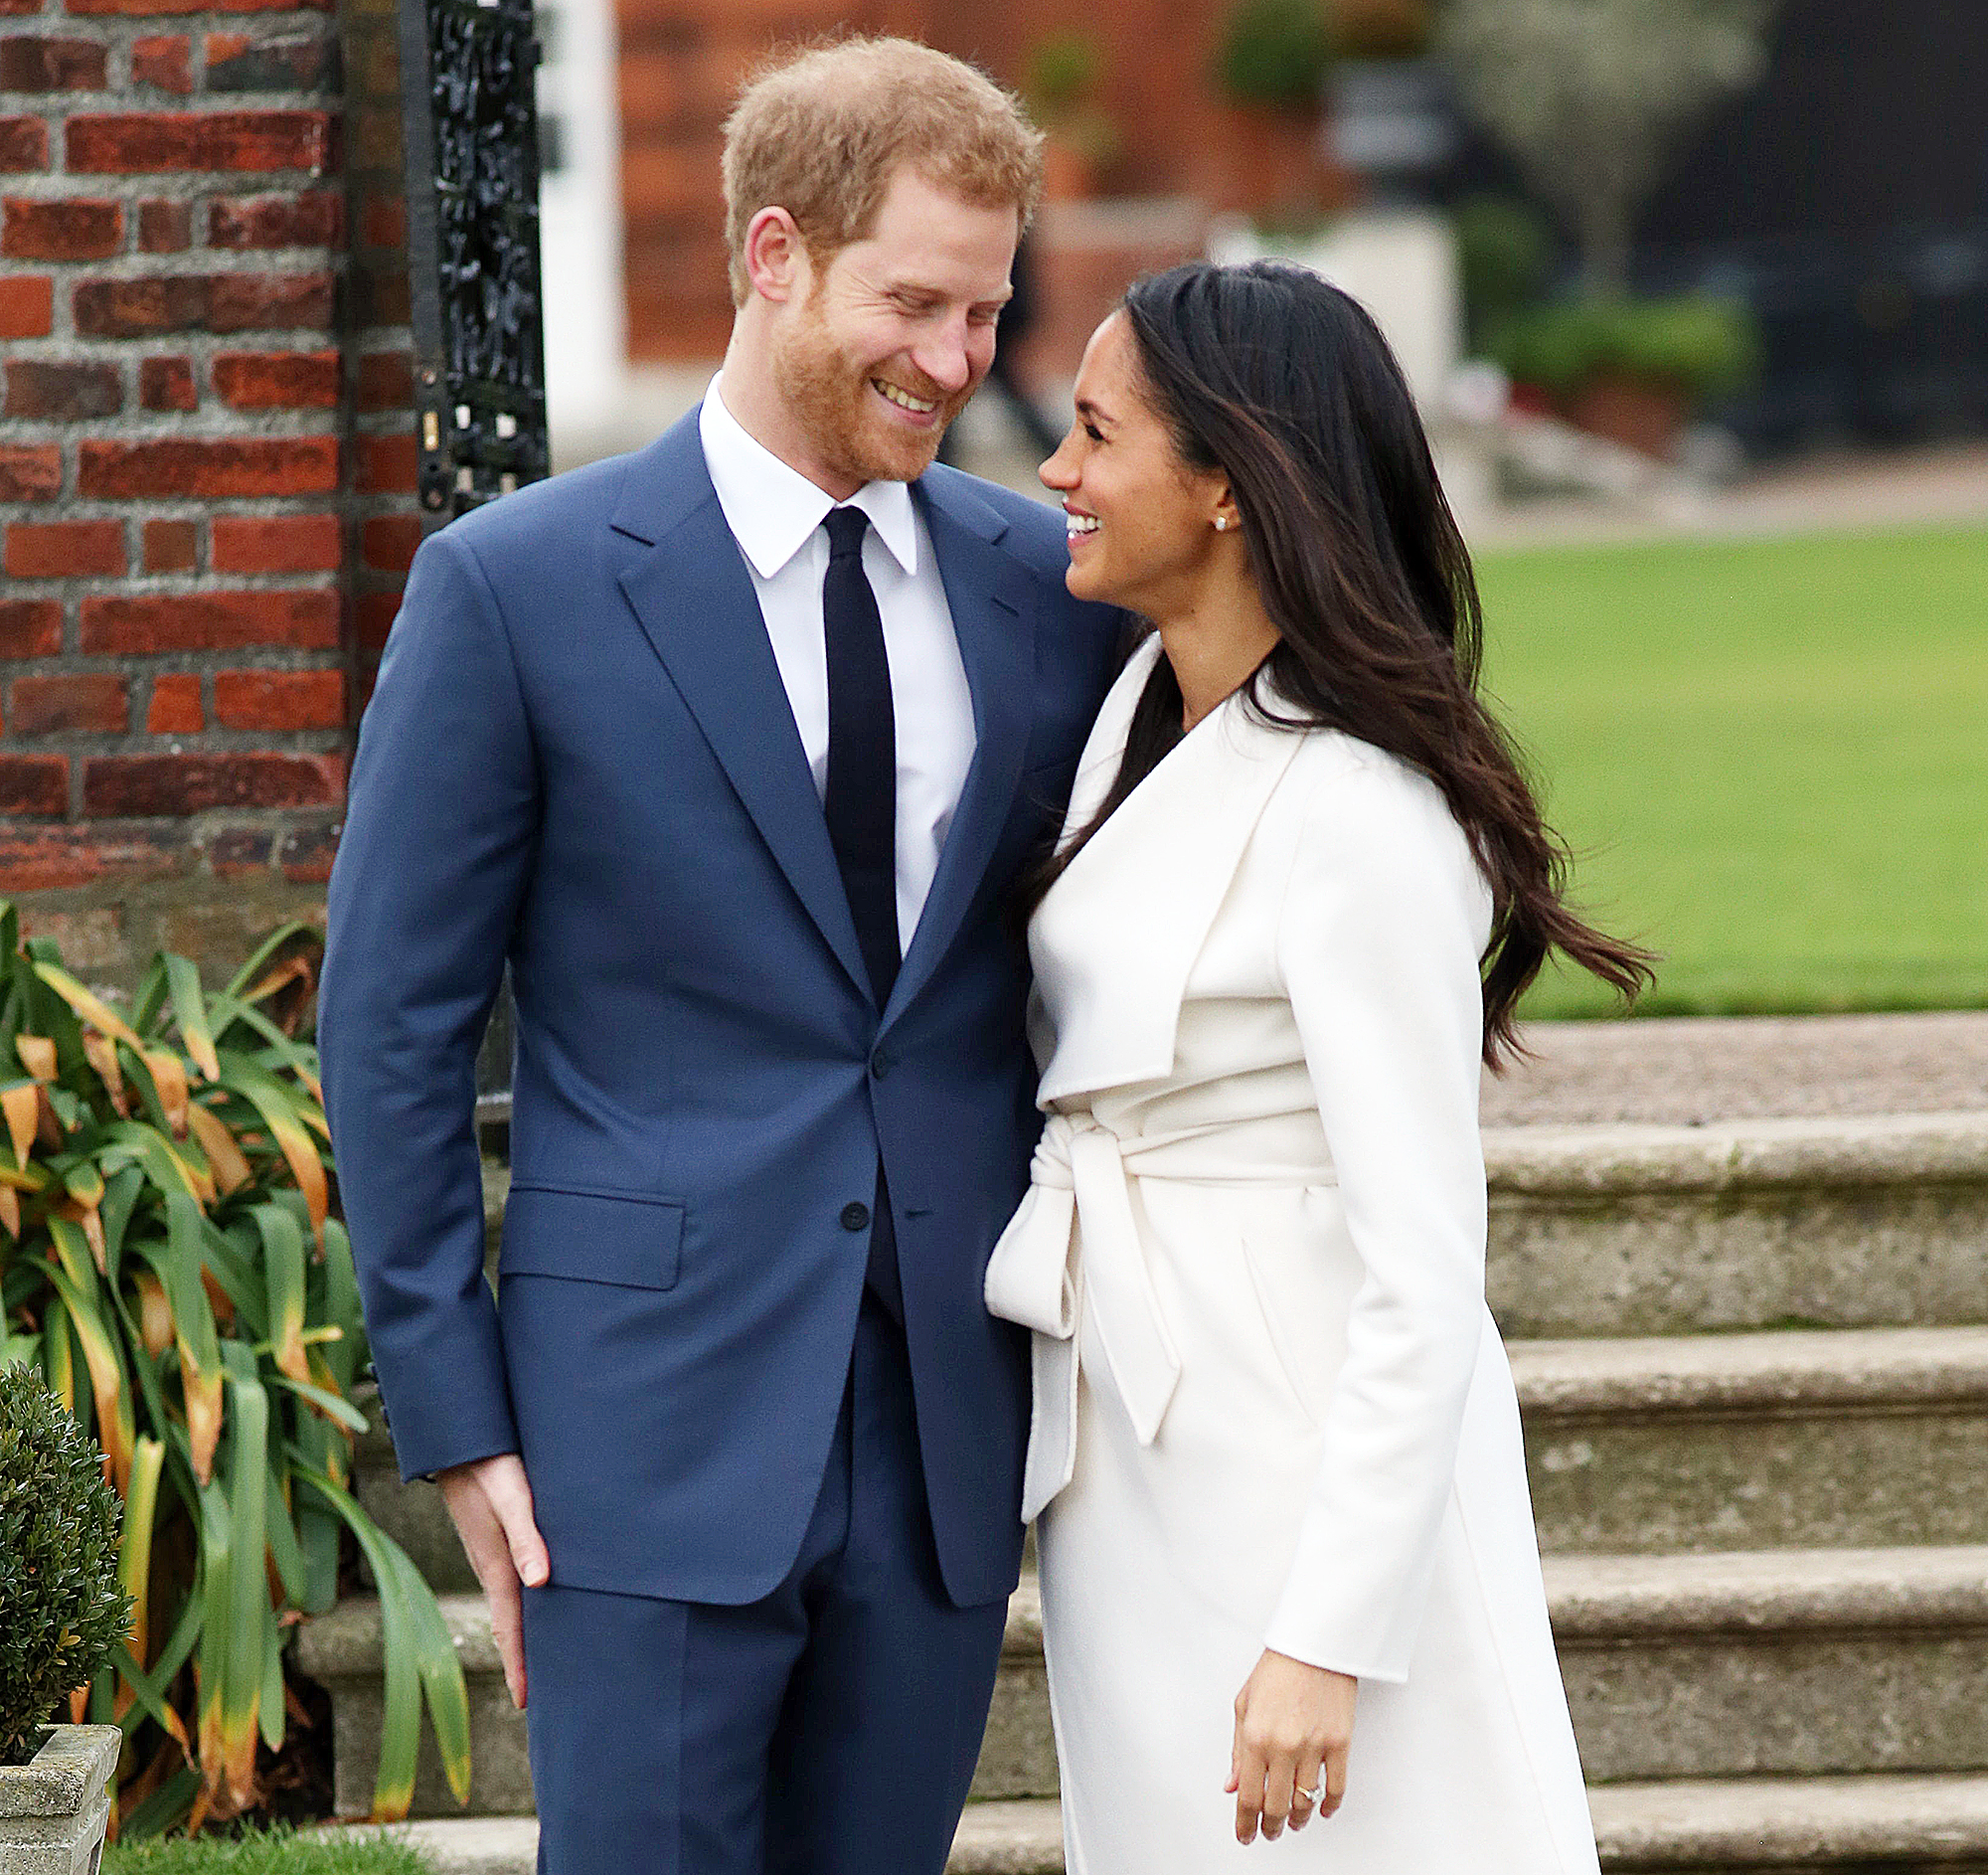 Prince Harry Meghan Markle First Date